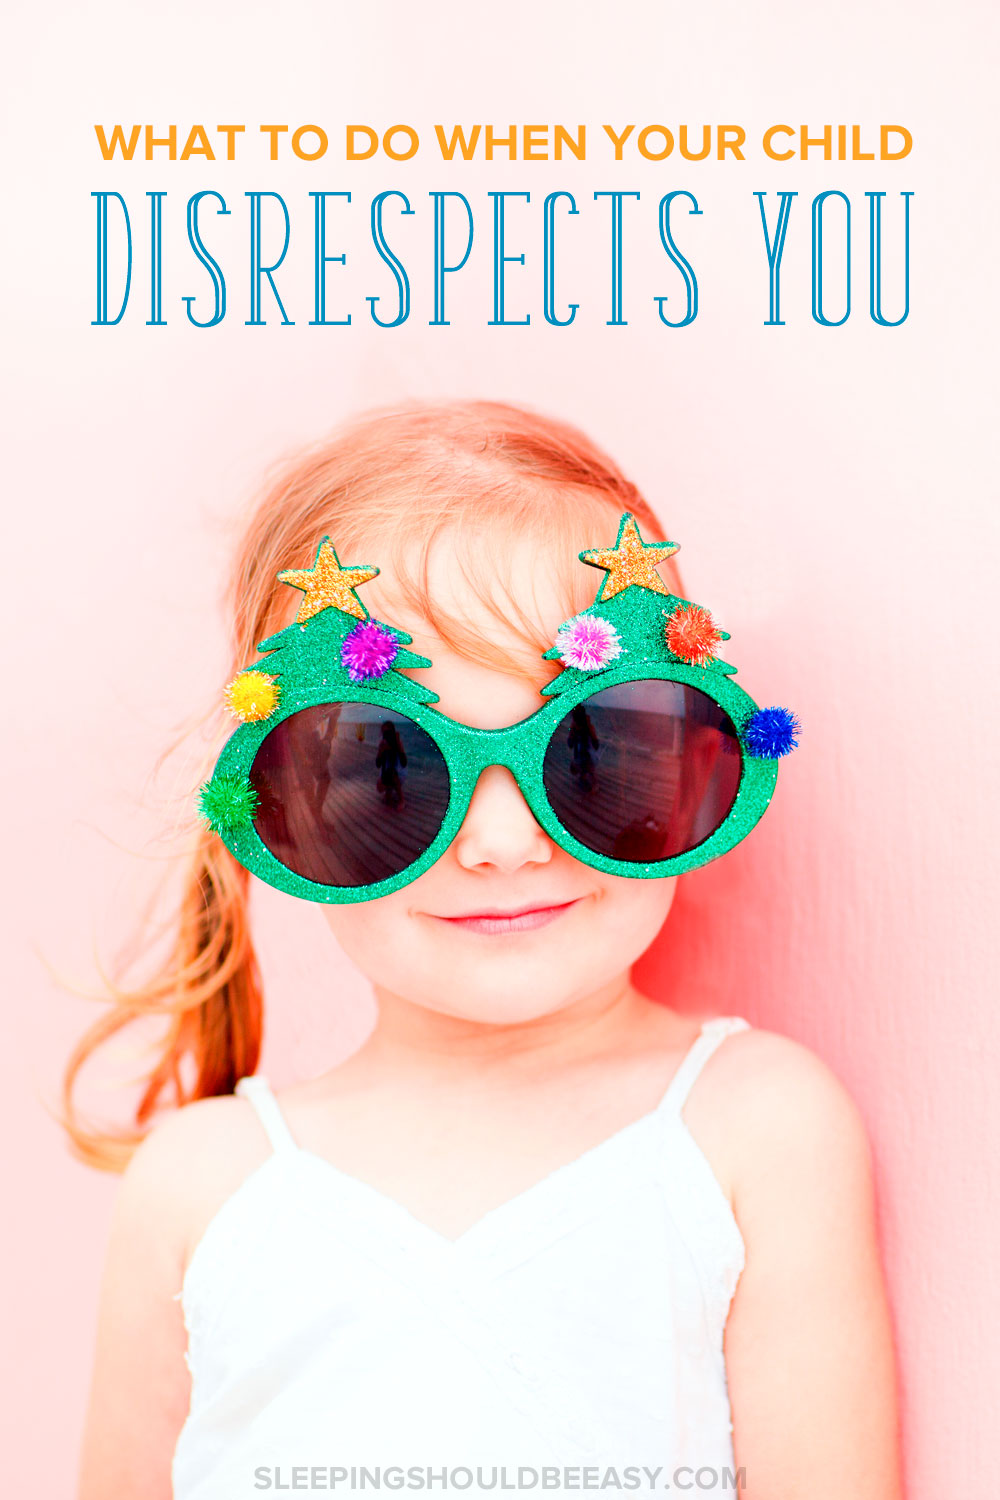 Little girl with funny glasses: What to do when your child disrespects you